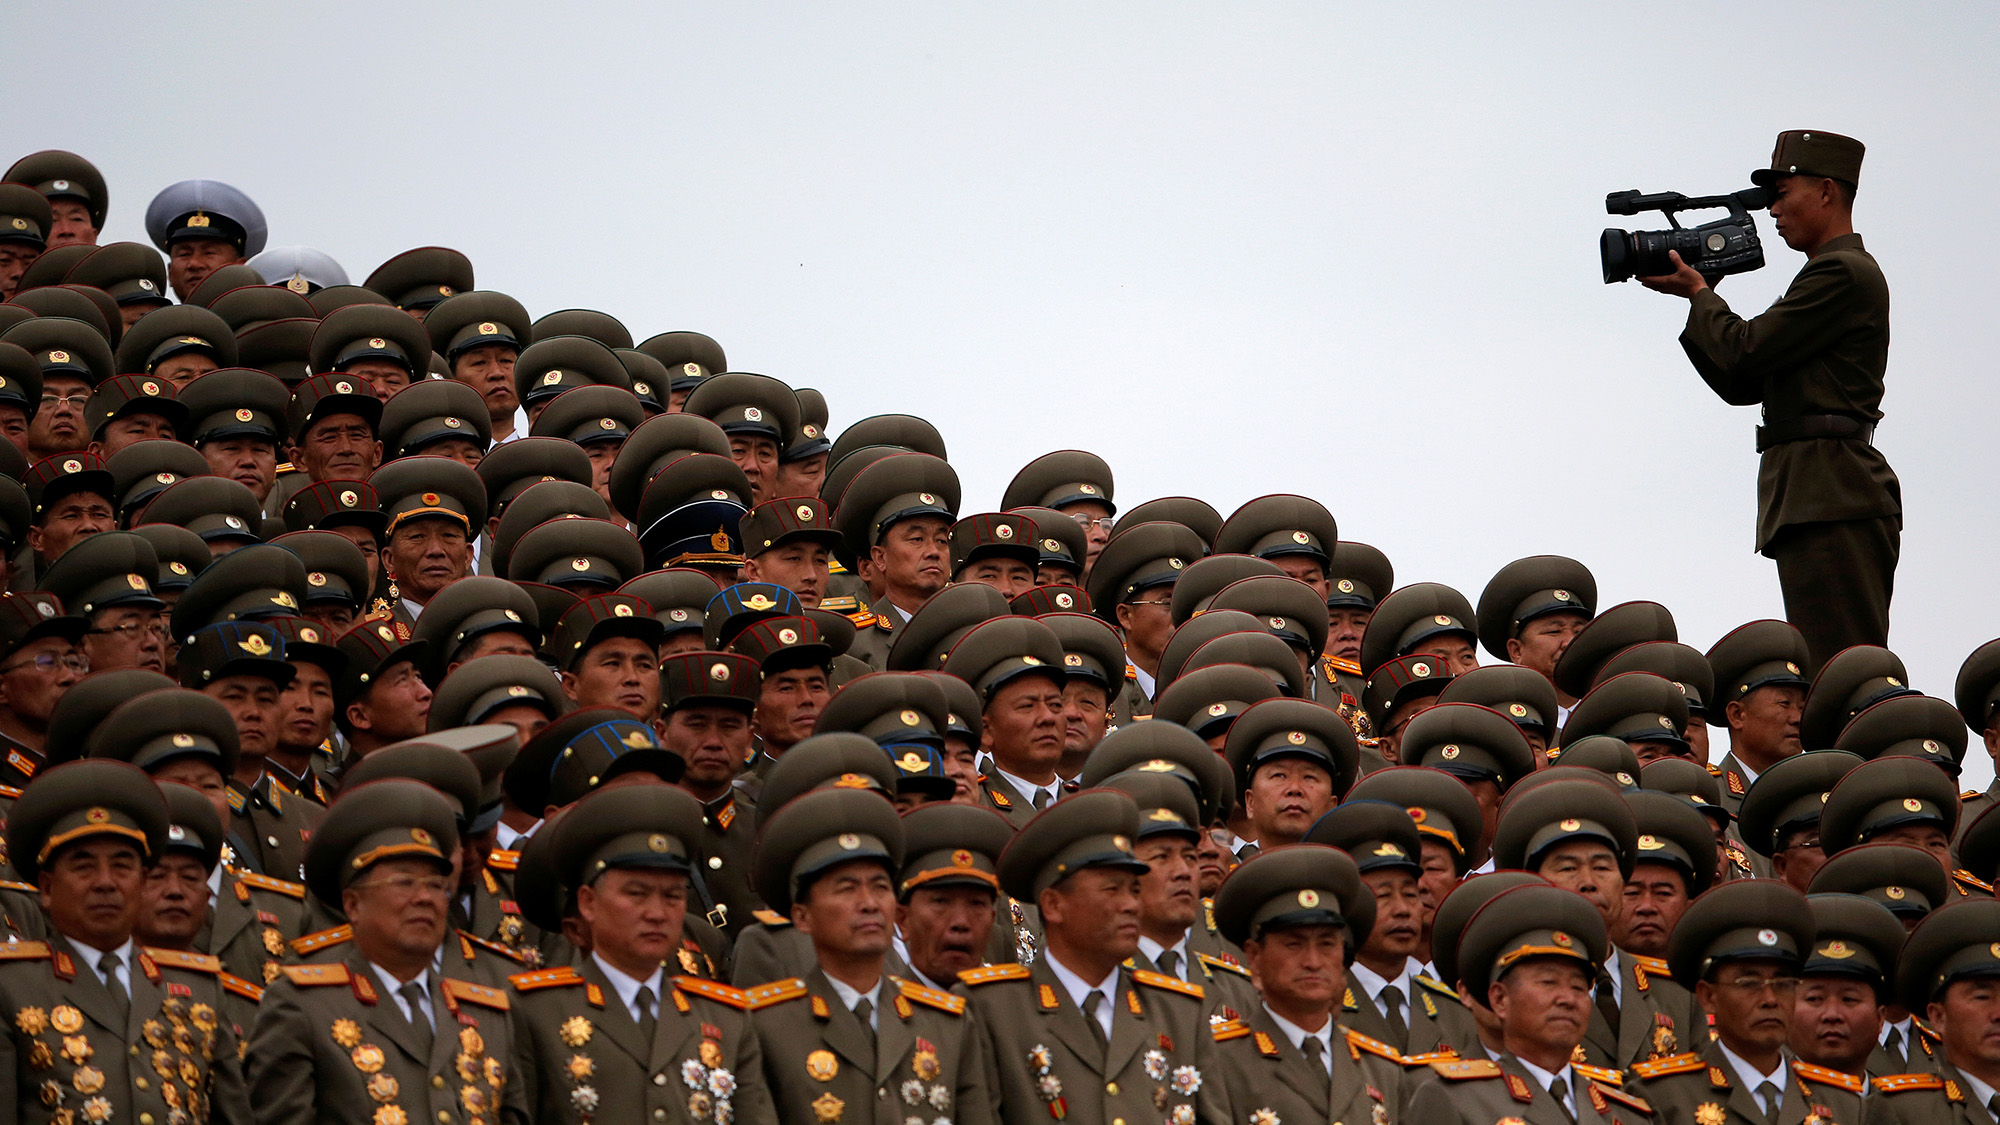 A solider films military officers following a mass dance performance in the capital's main ceremonial square, a day after the ruling Workers' Party of Korea party wrapped up its first congress in 36 years, in Pyongyang, North Korea, May 10, 2016. REUTERS/Damir Sagolj     TPX IMAGES OF THE DAY      - RTX2DOF8